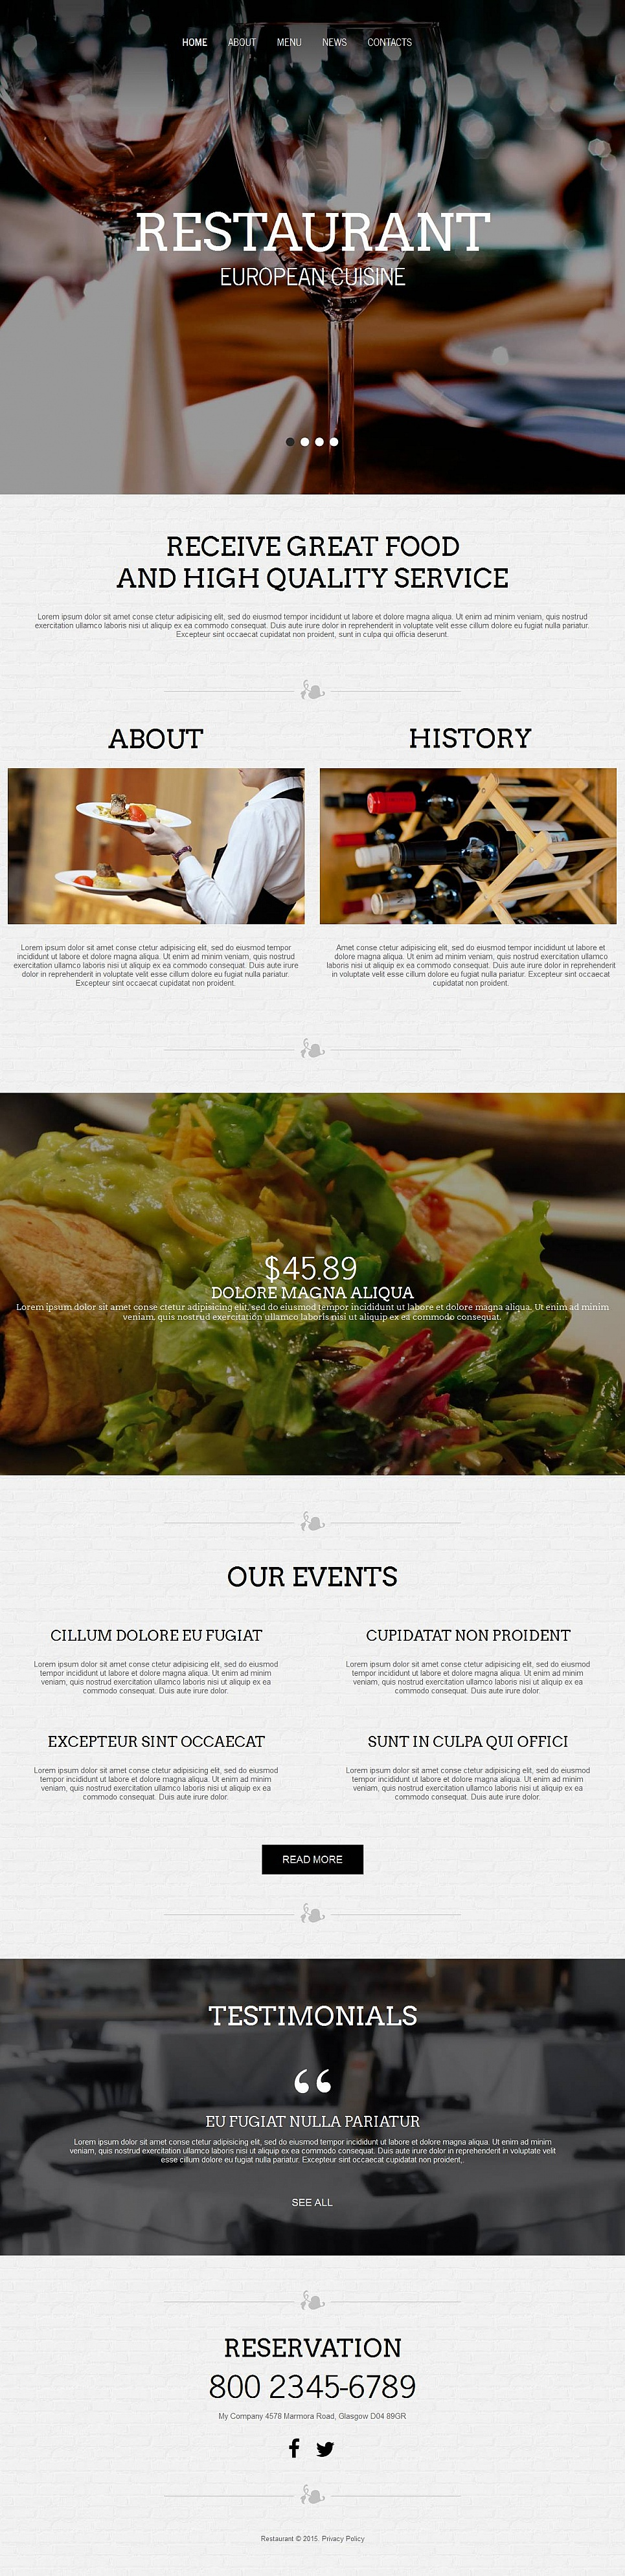 Black and White Website Template for Restaurants - image